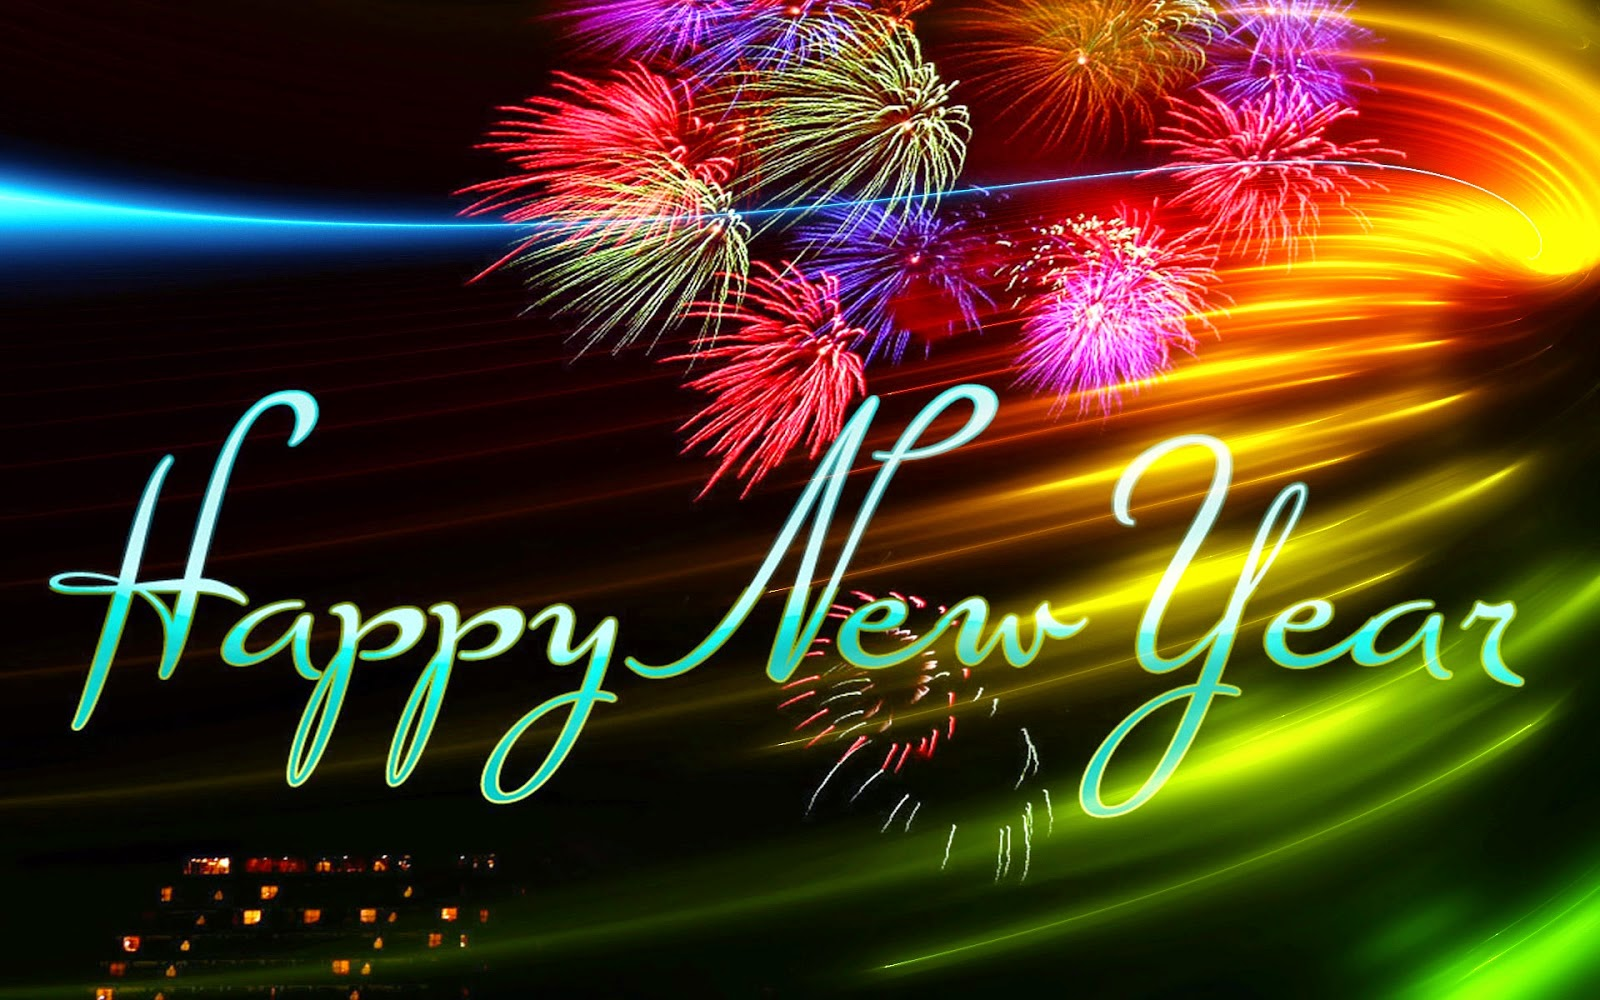 Happy New Year 2016 Facebook Cover Images HD Download